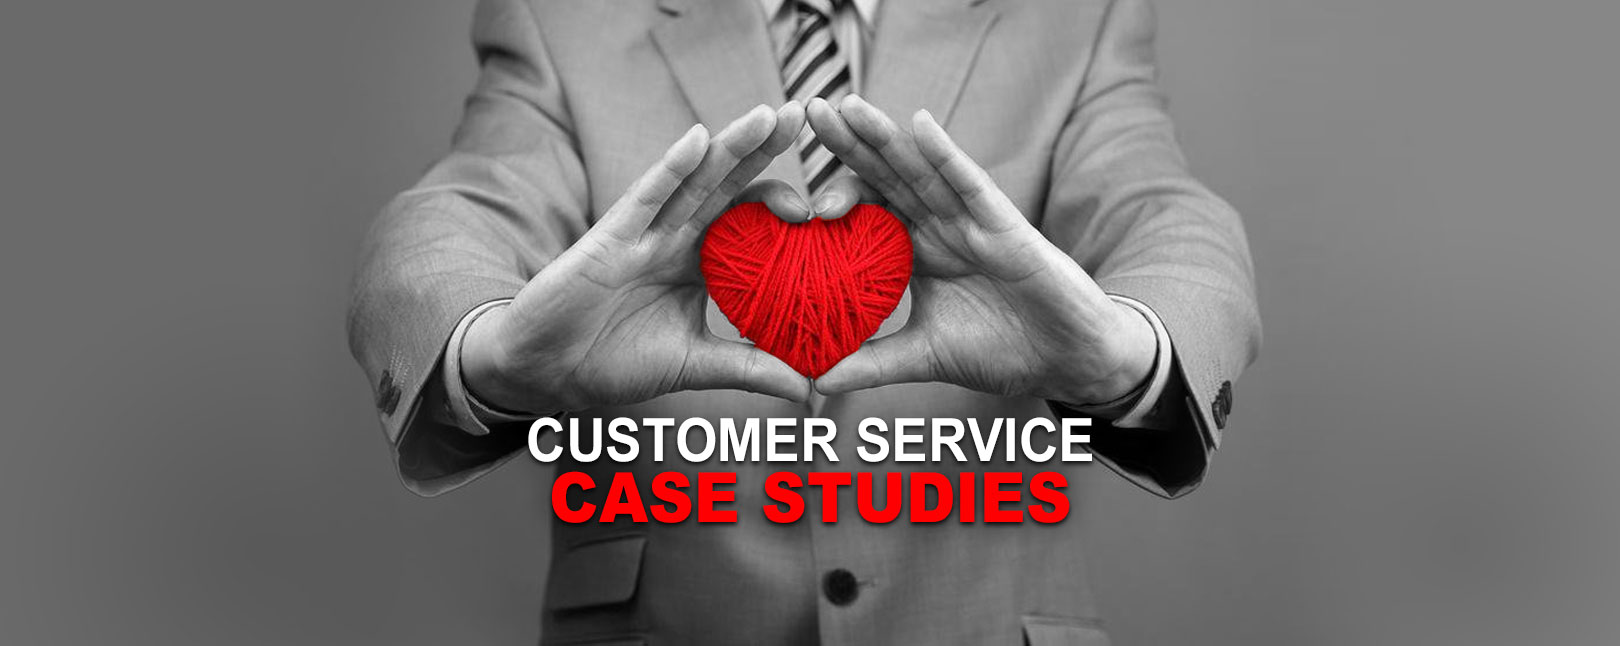 customer service cases Customer service standards for the case resoulution process.